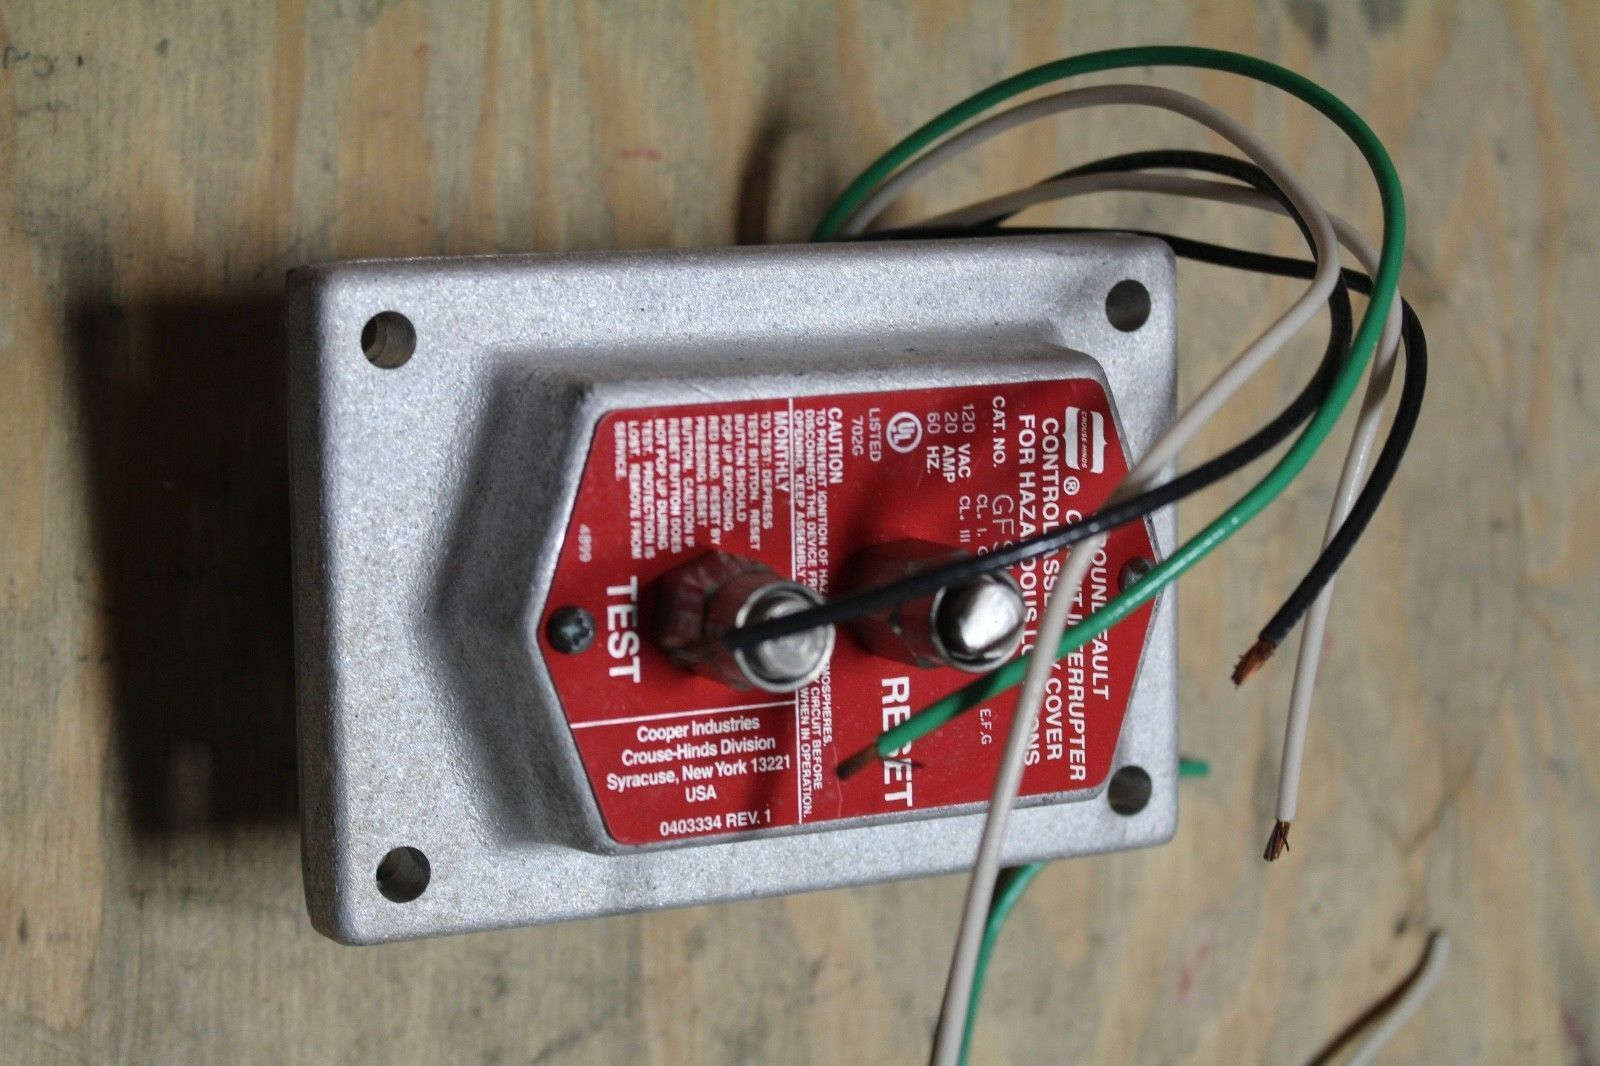 Crouse Hinds Gfs1 Circuit Interrupter Grounded Fault 120vac Ebay An Overview Of Gfci Groundfault Eep Stock Photo